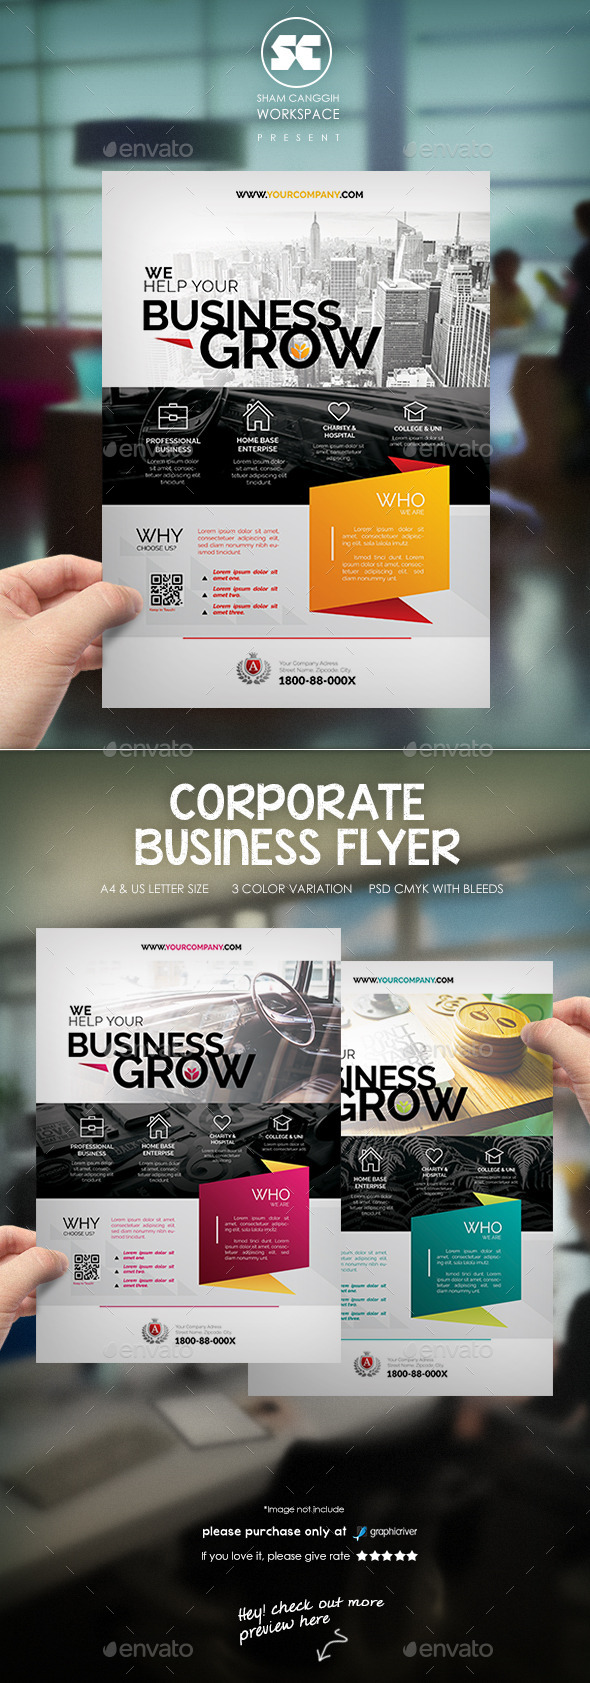 Corporate Business Flyer / Magazine Ads - Corporate Flyers